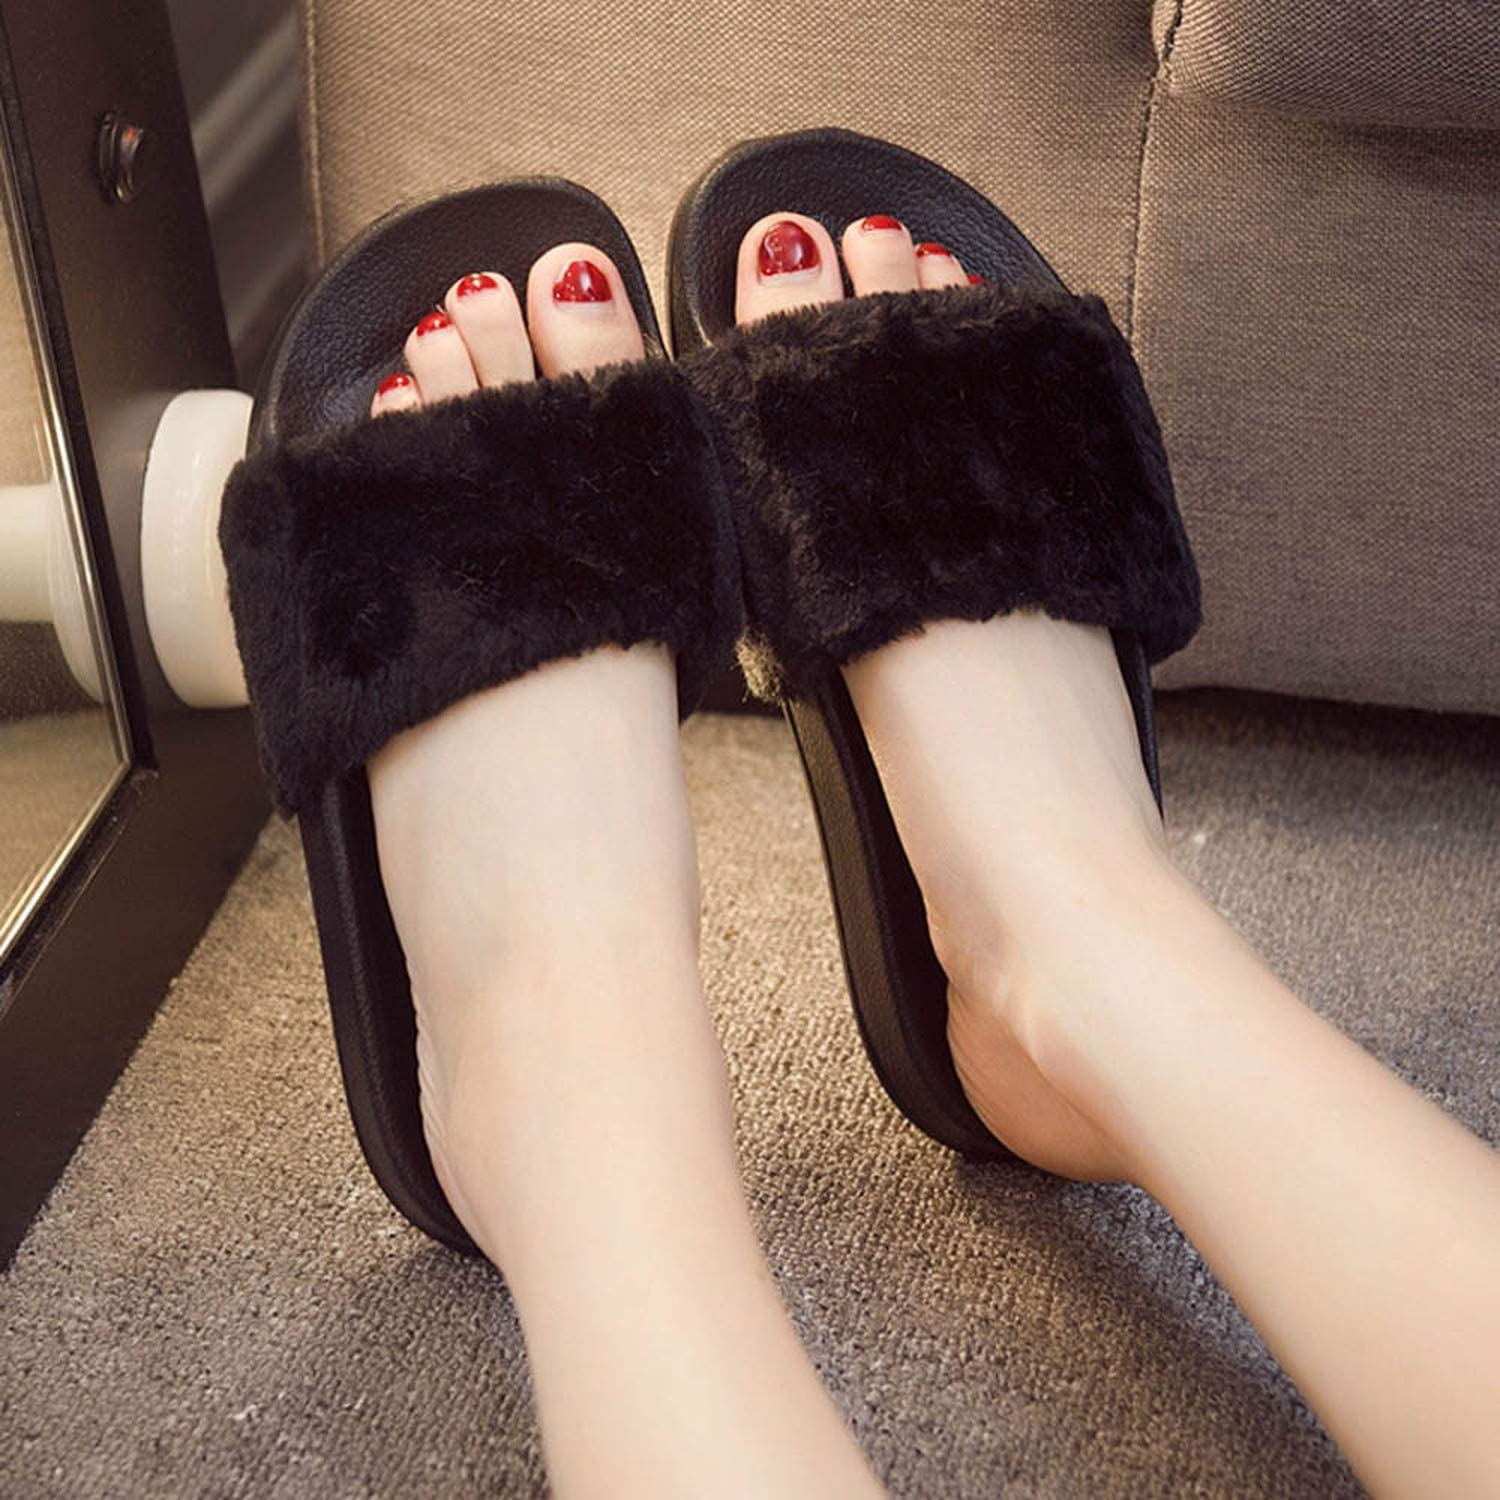 tomorrow-today Womens Slippers Zapatos Mujer Slip On Sliders Fluffy Faux Fur Flat Size